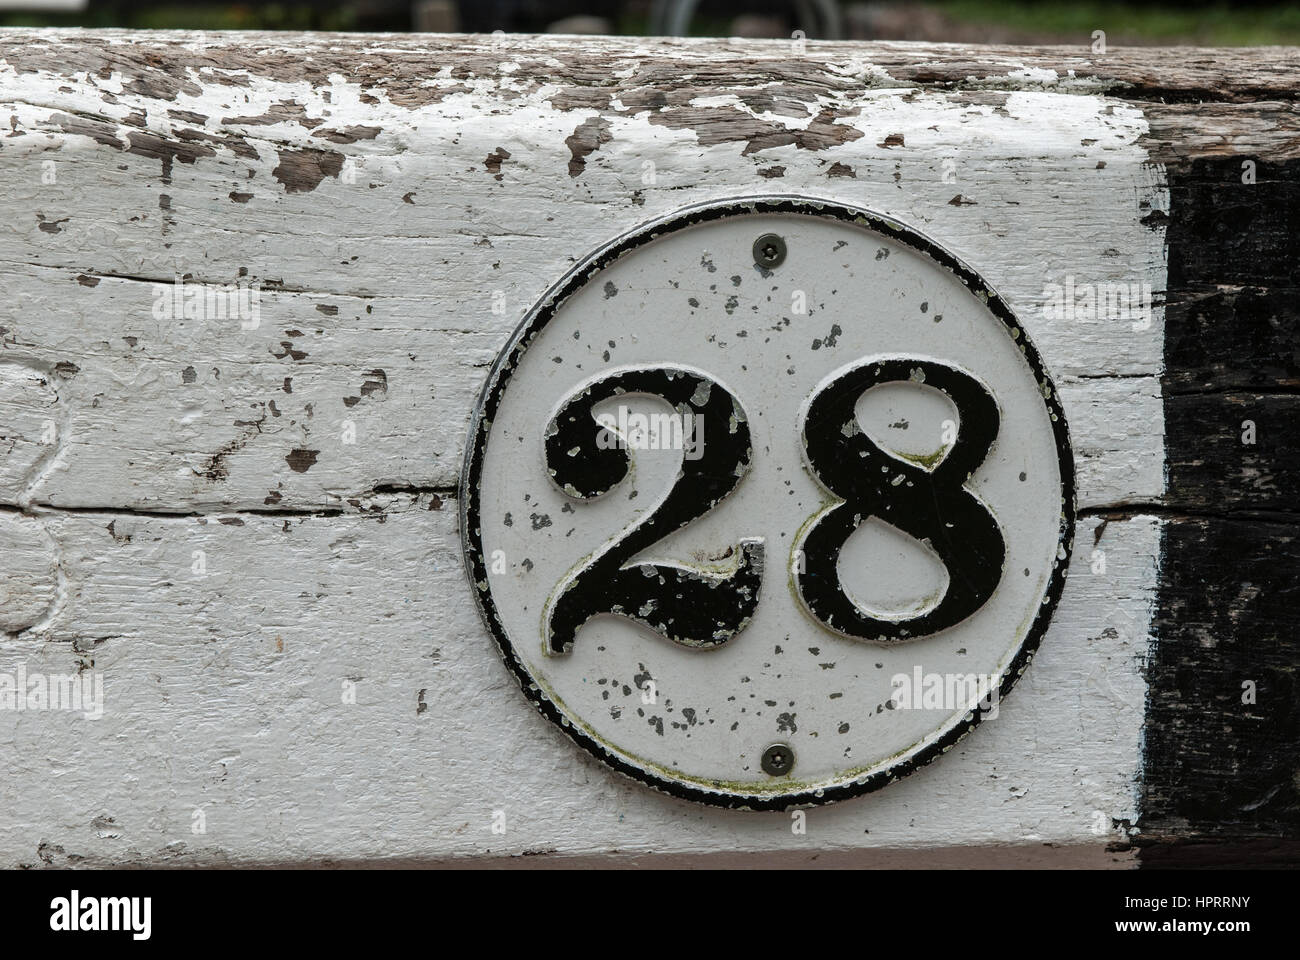 The number 28 black on white in a circular border painted against a white and black wooden background. - Stock Image